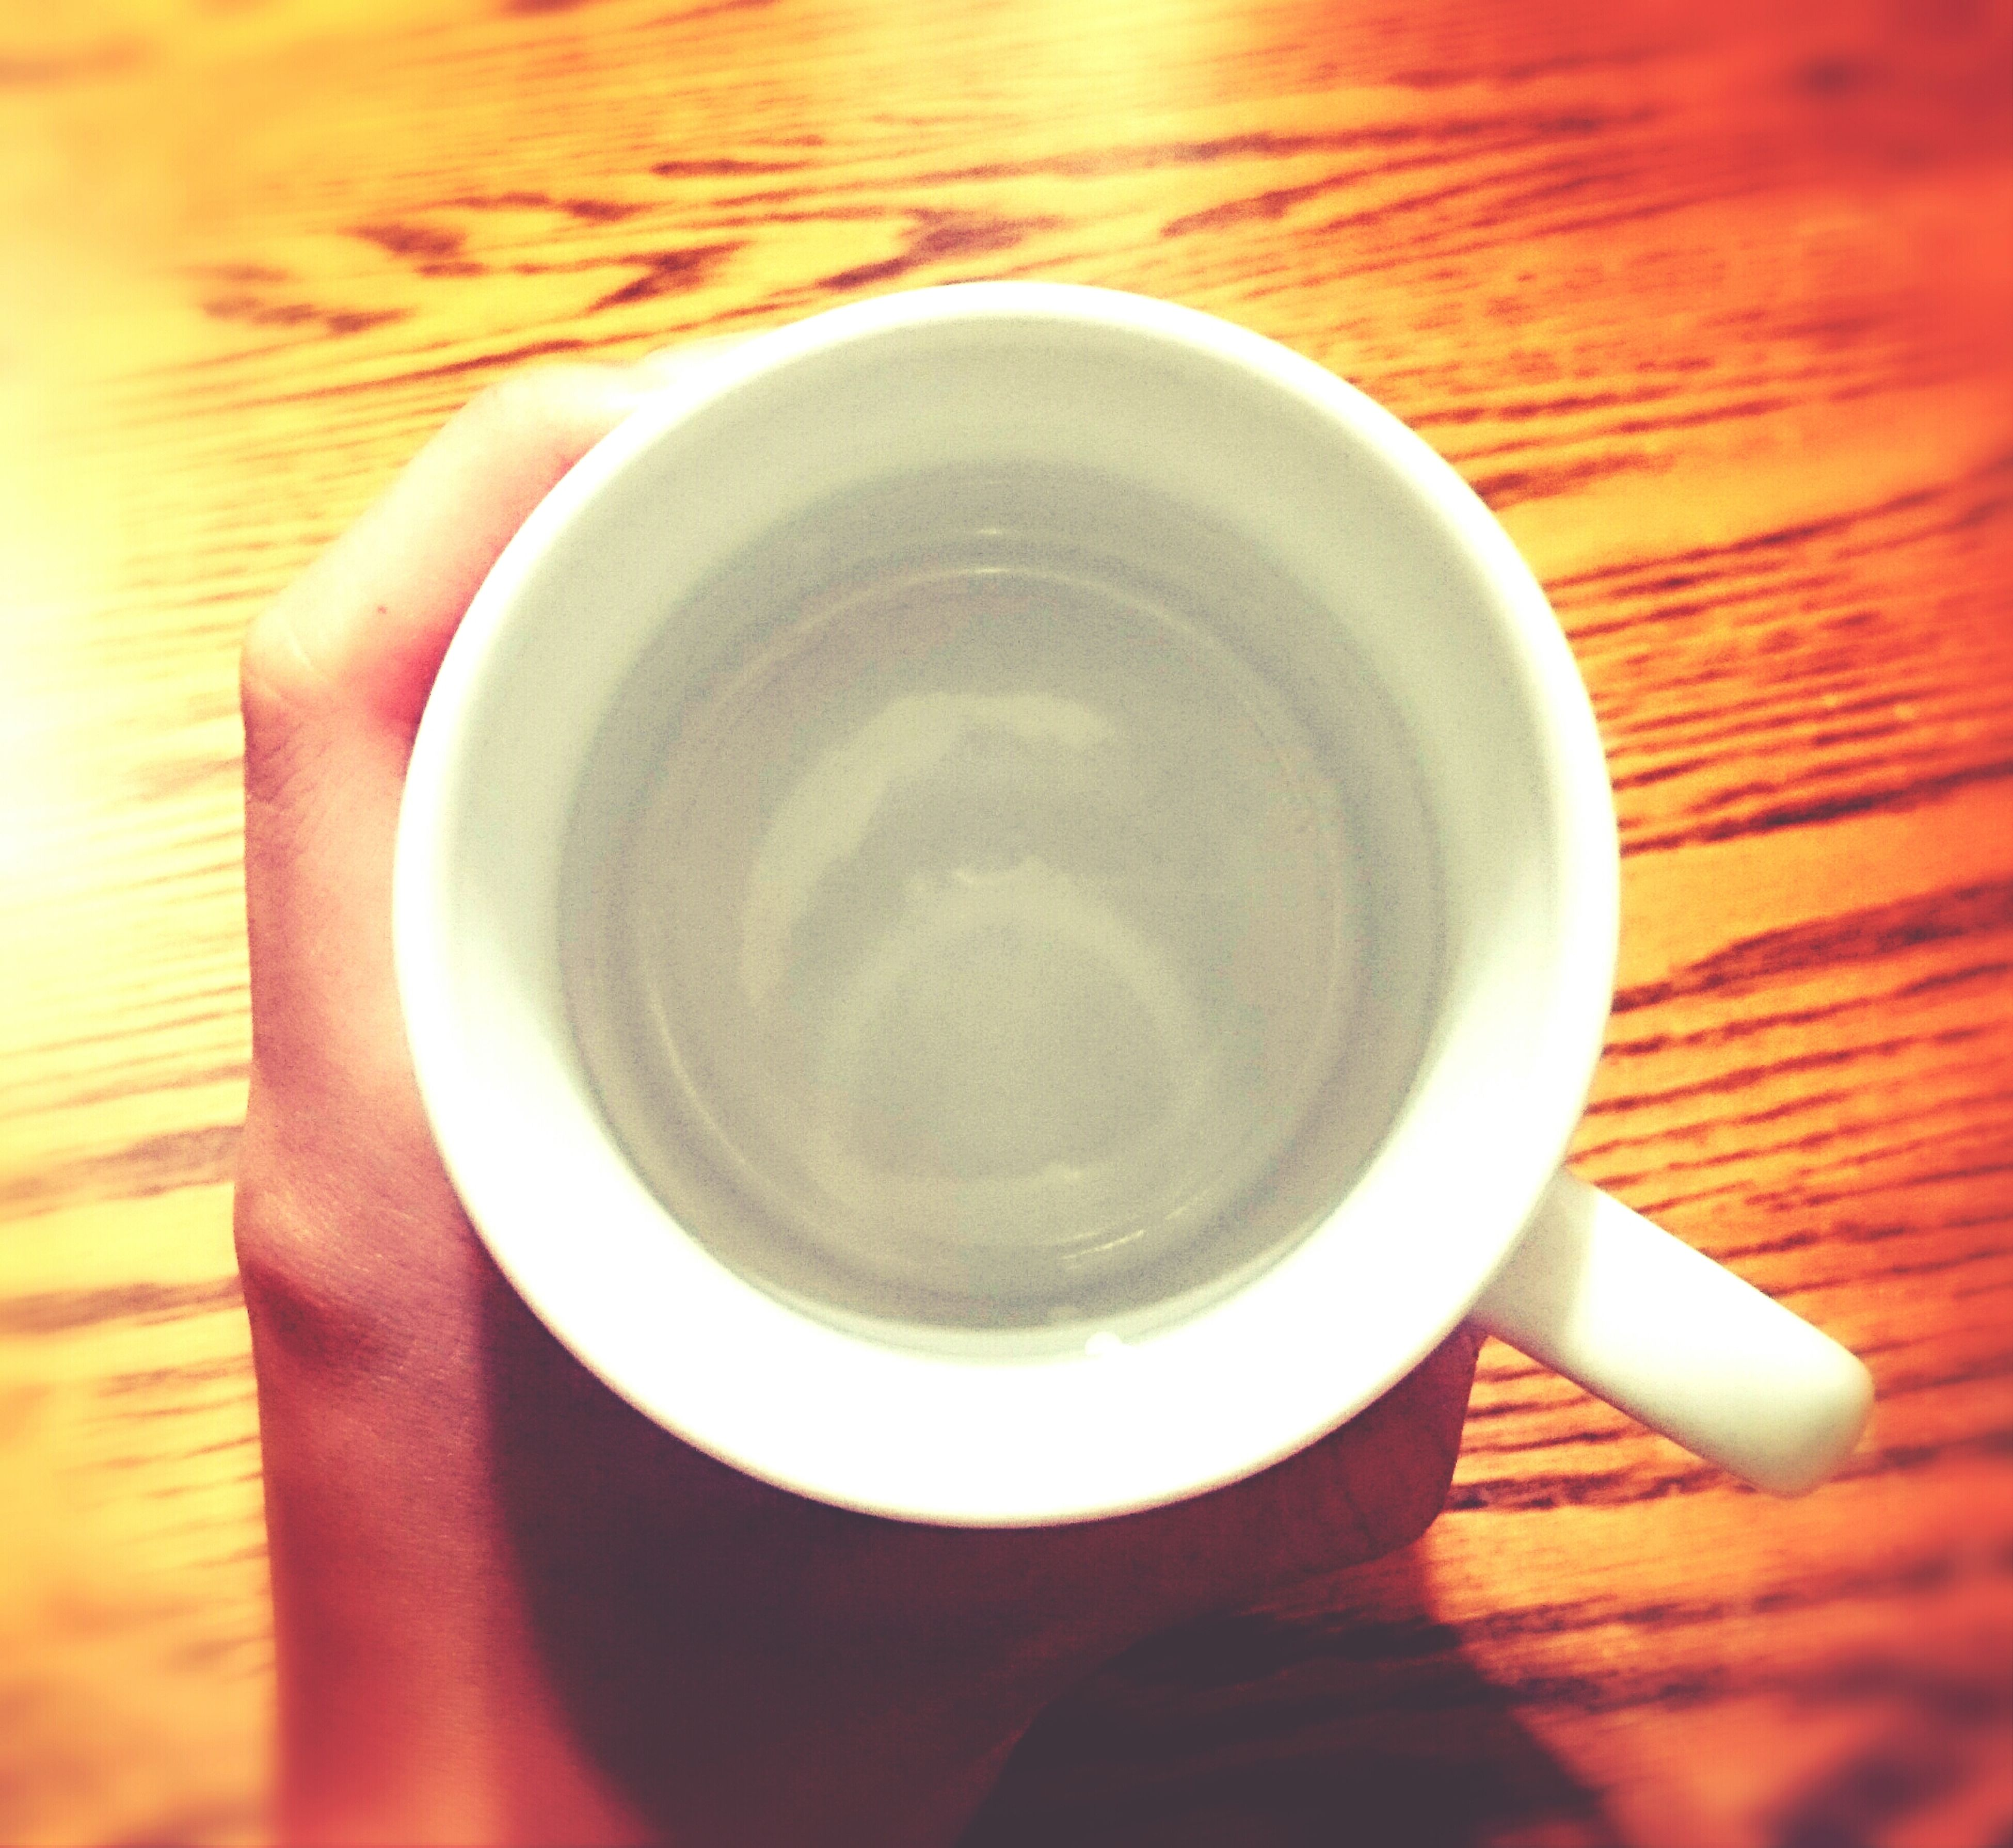 drink, coffee cup, food and drink, indoors, refreshment, coffee - drink, table, coffee, freshness, saucer, cup, spoon, still life, tea cup, high angle view, beverage, close-up, directly above, hot drink, tea